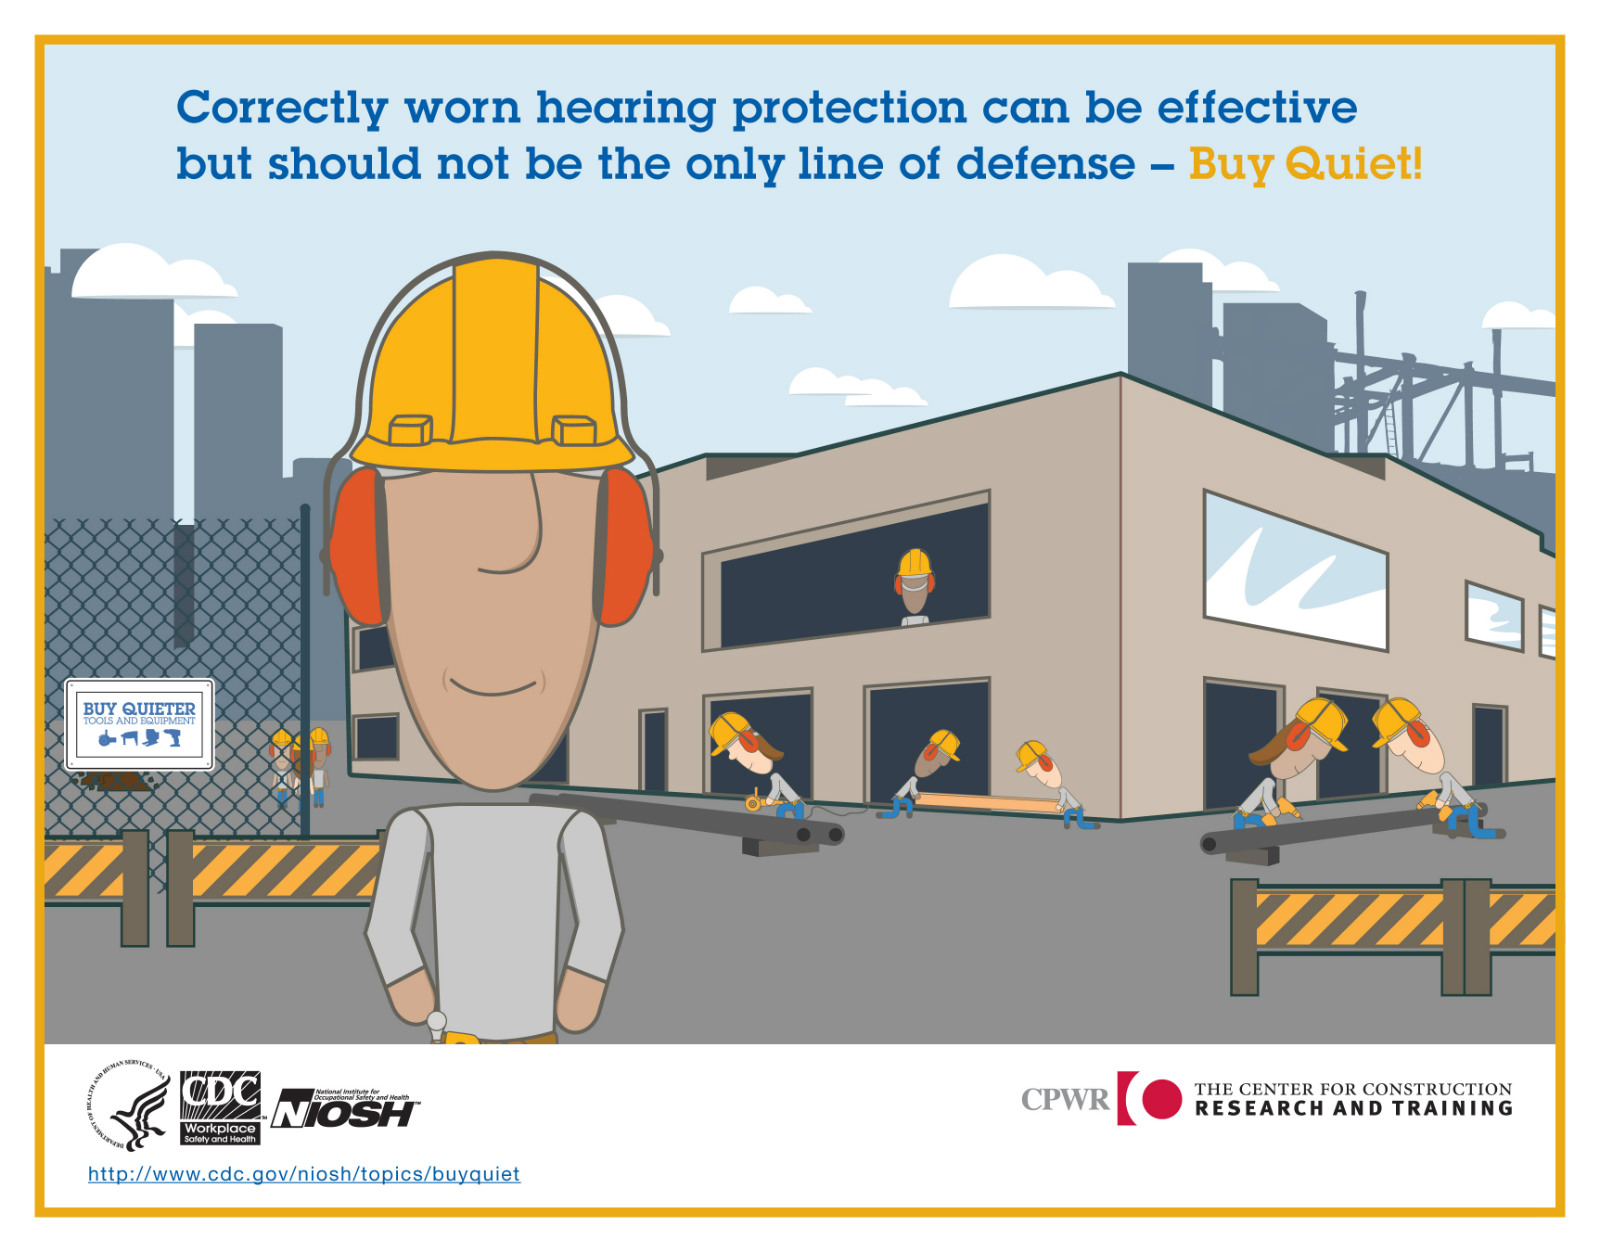 Correctly worn hearing protection can be effective but should not be the only line of defense. Buy Quiet!